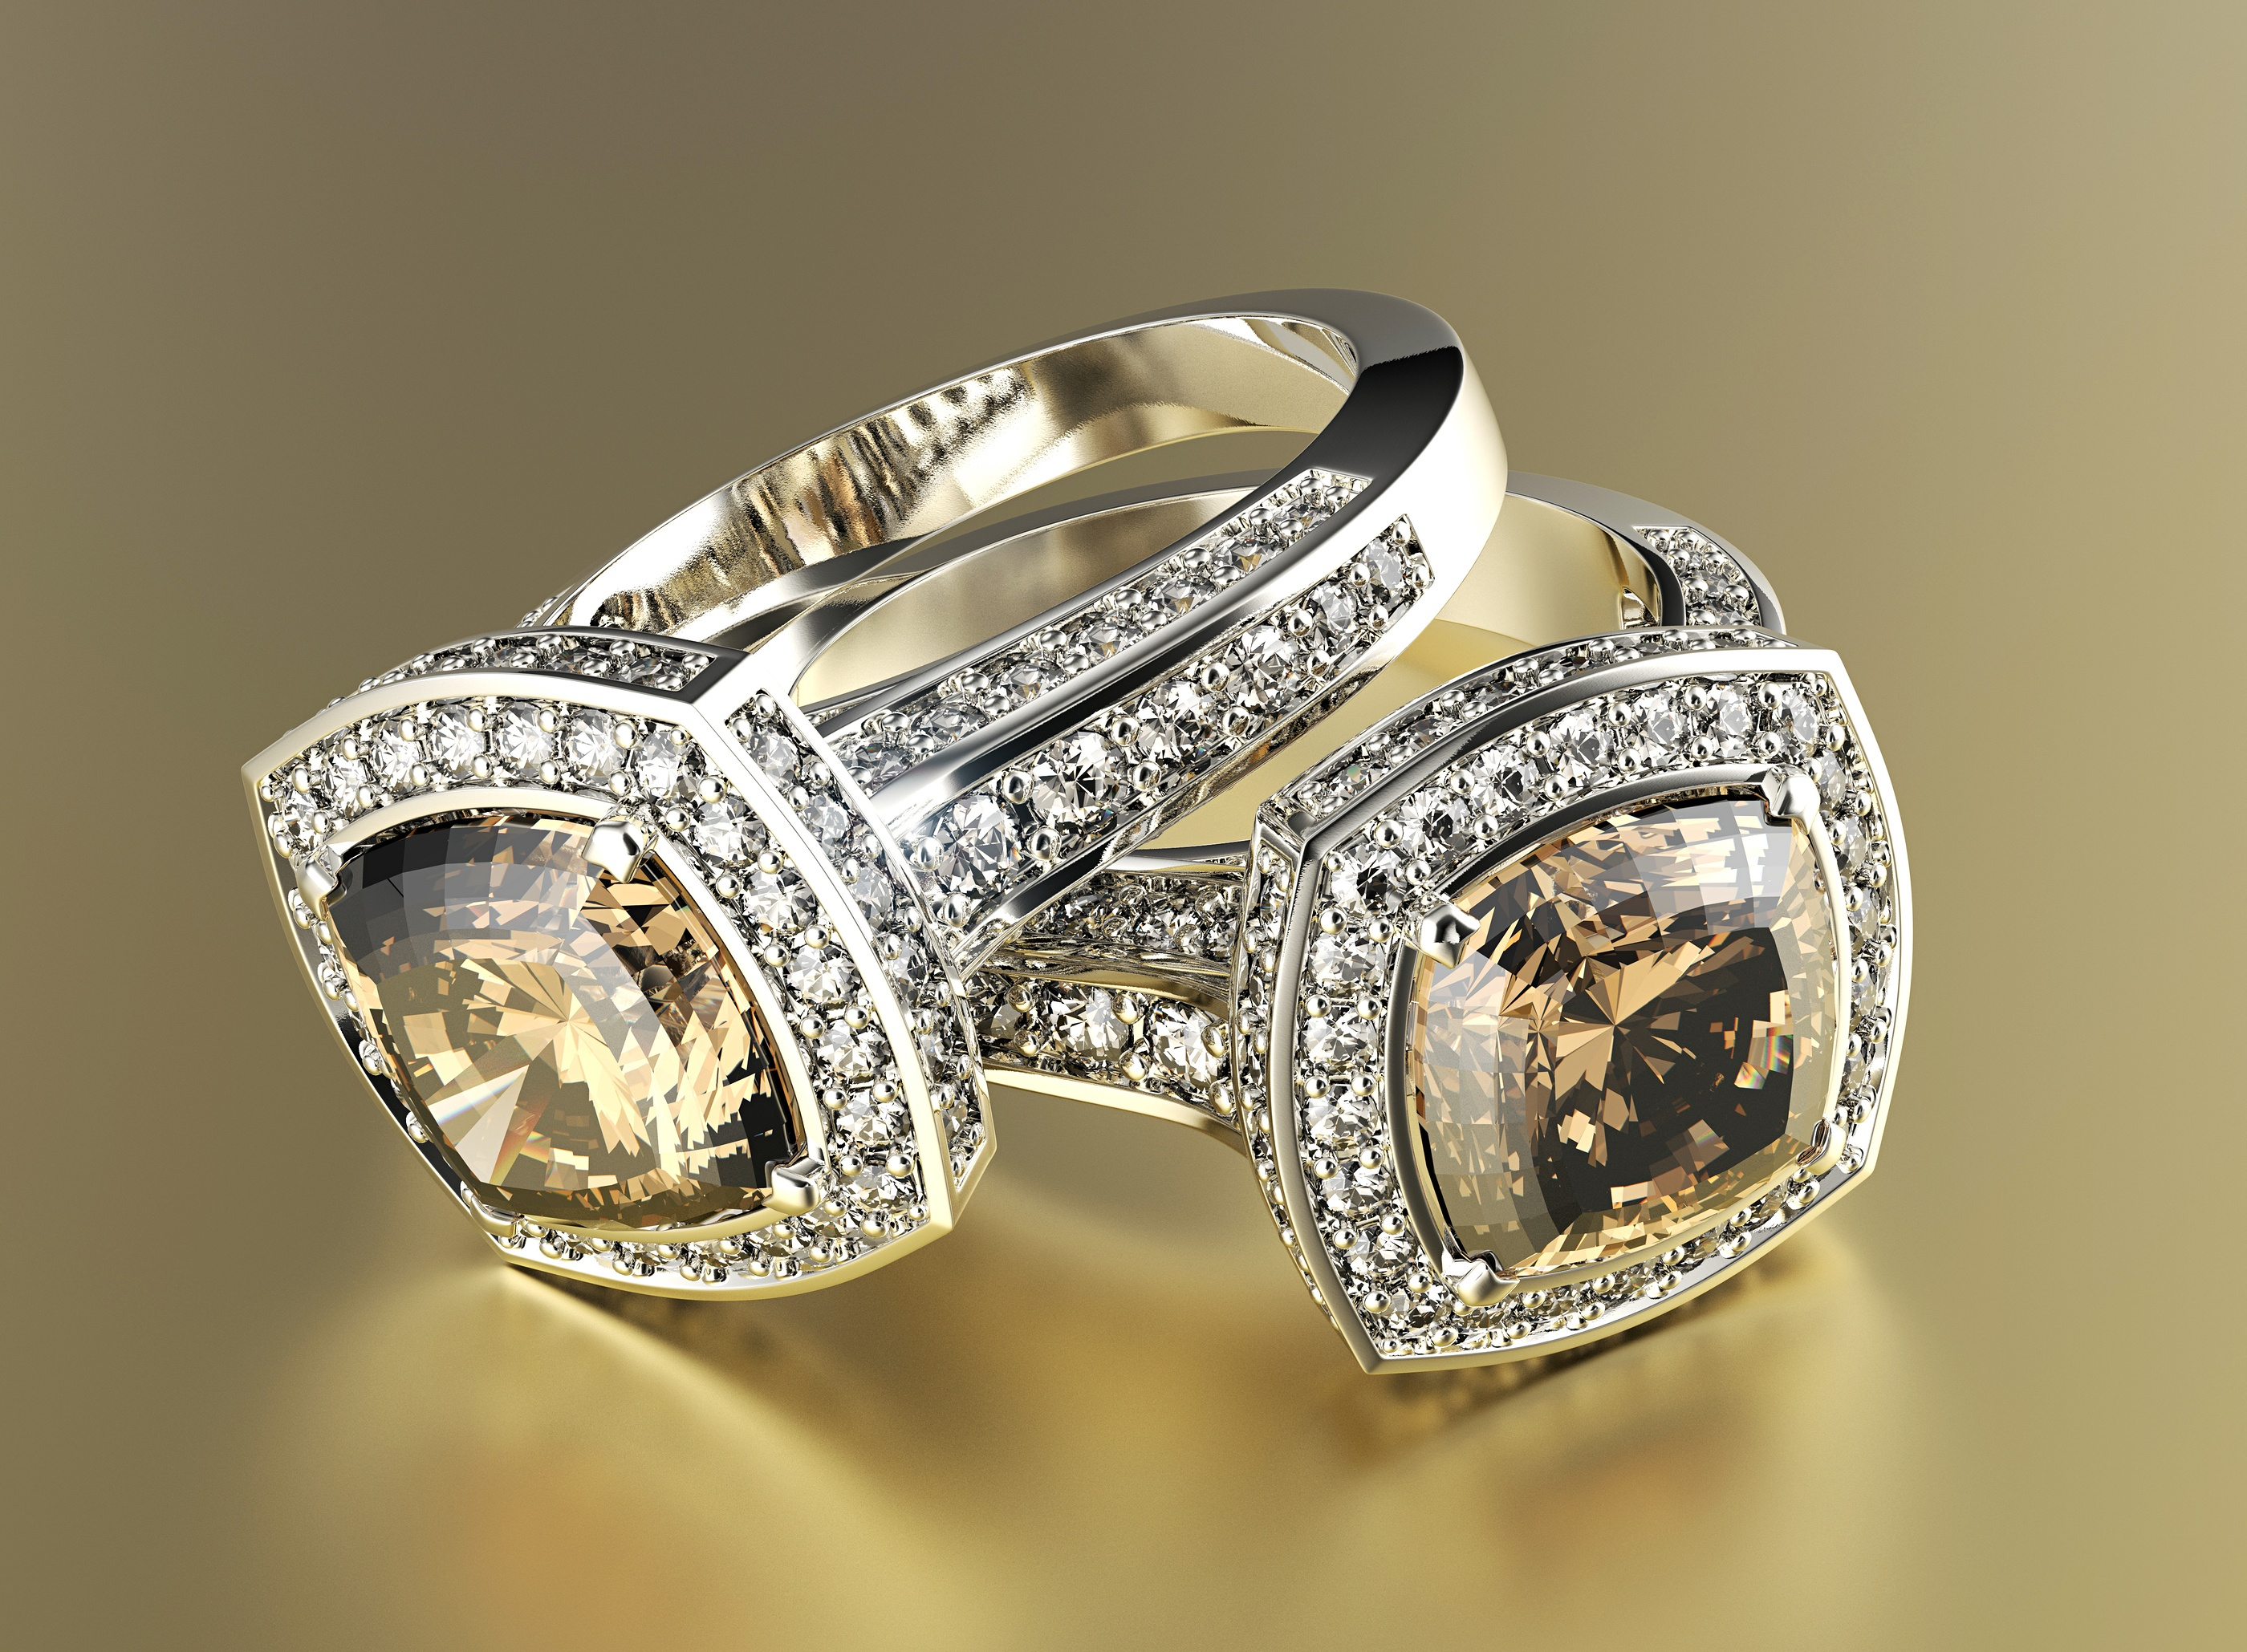 bigstock-Golden-Engagement-Ring-with-Co-87012287.jpg